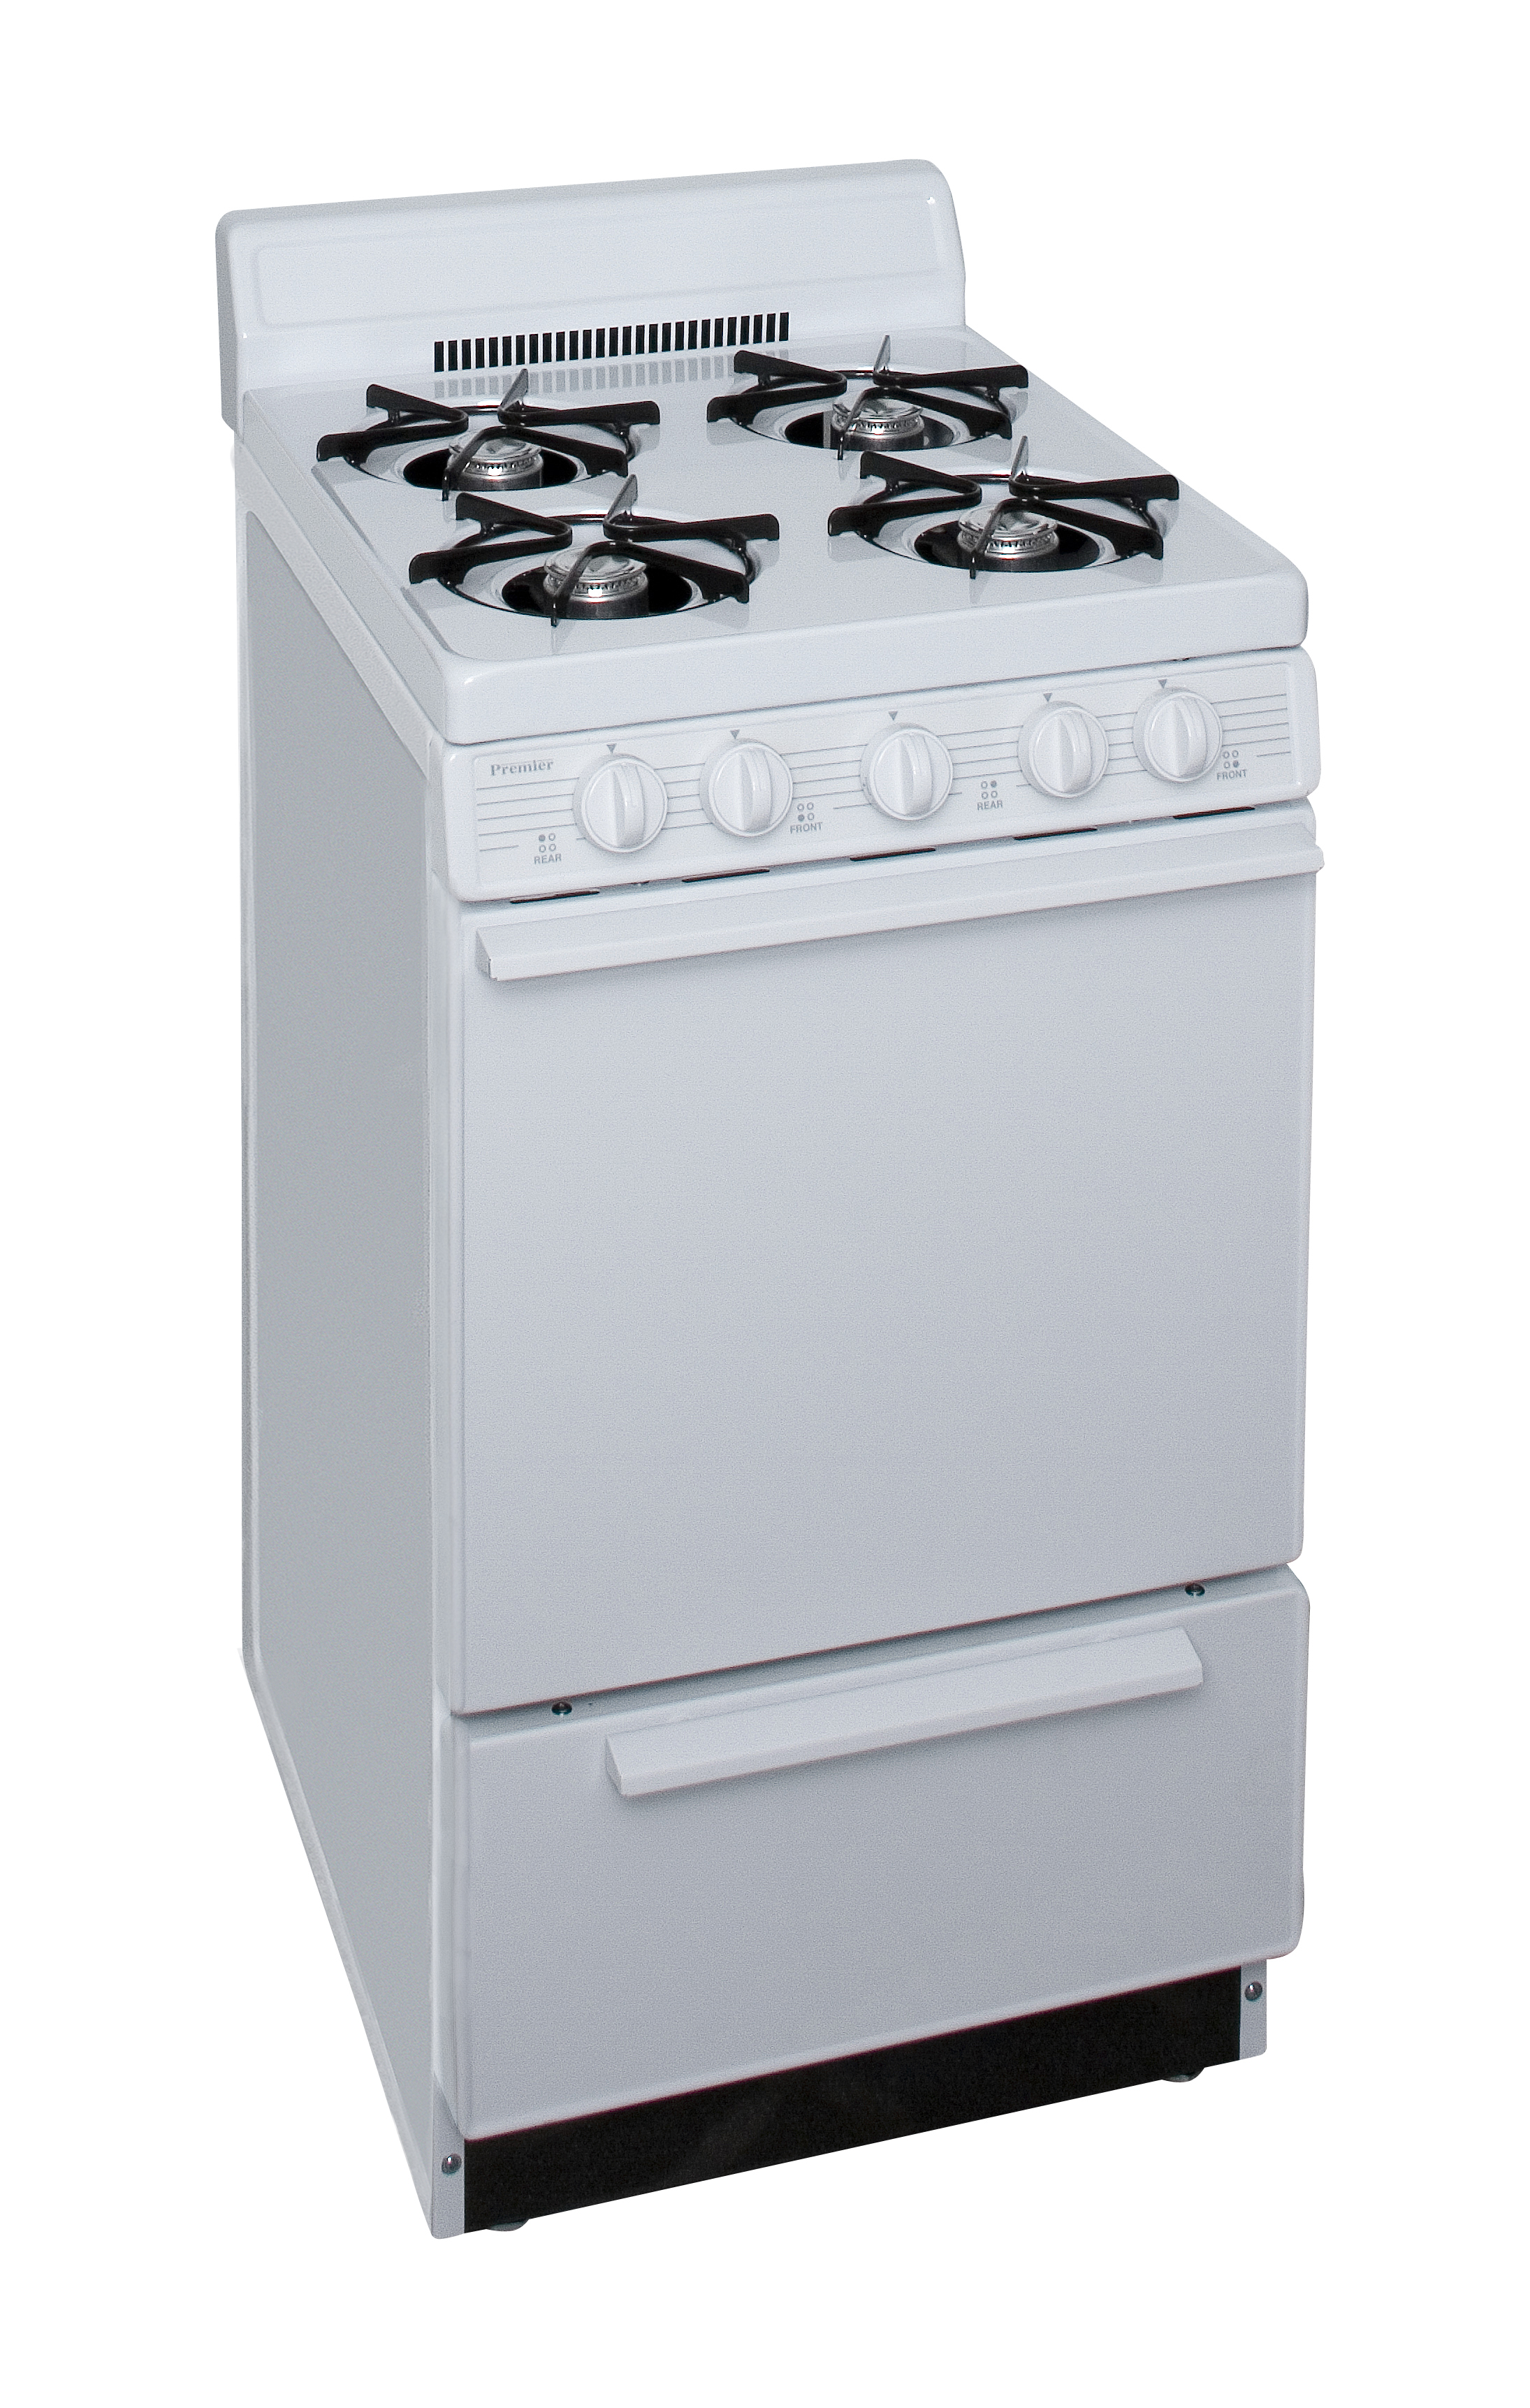 which peerless premier gas stove model has the options you